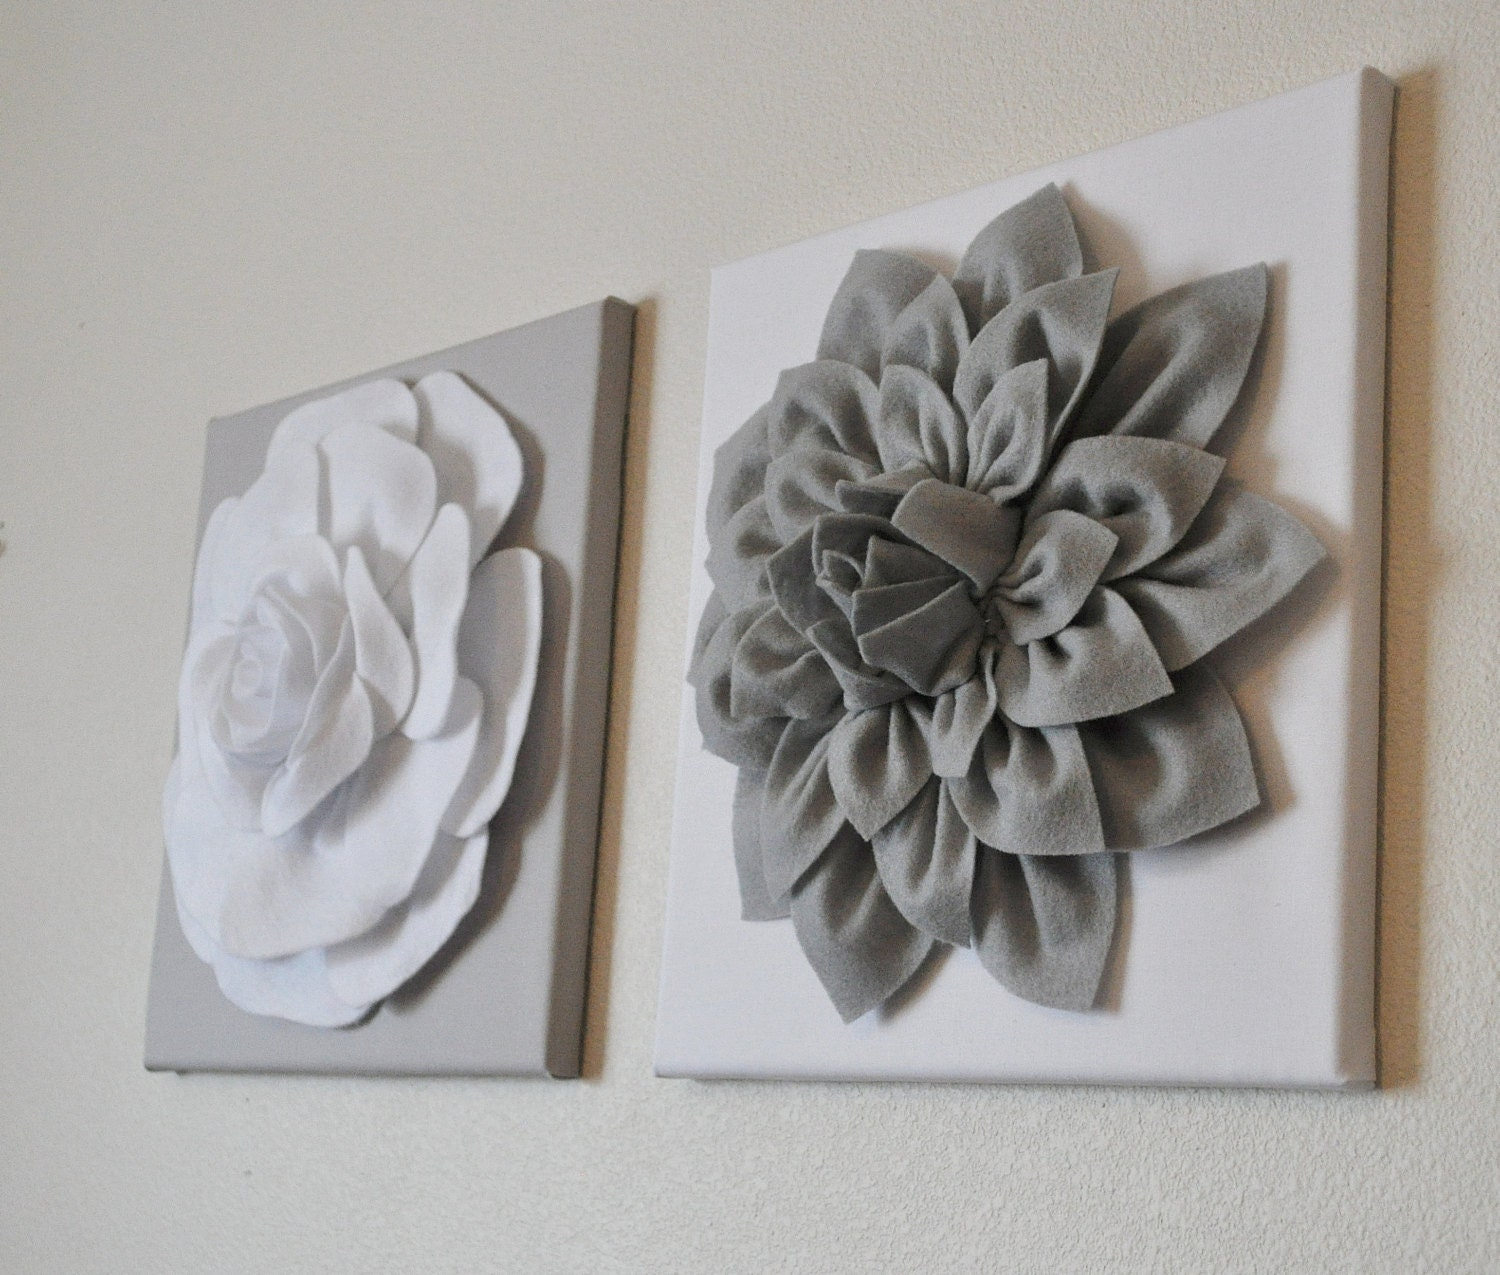 Silver Wall Art Two Wall Flowers Gray Dahlia On White And White Rose On Gray